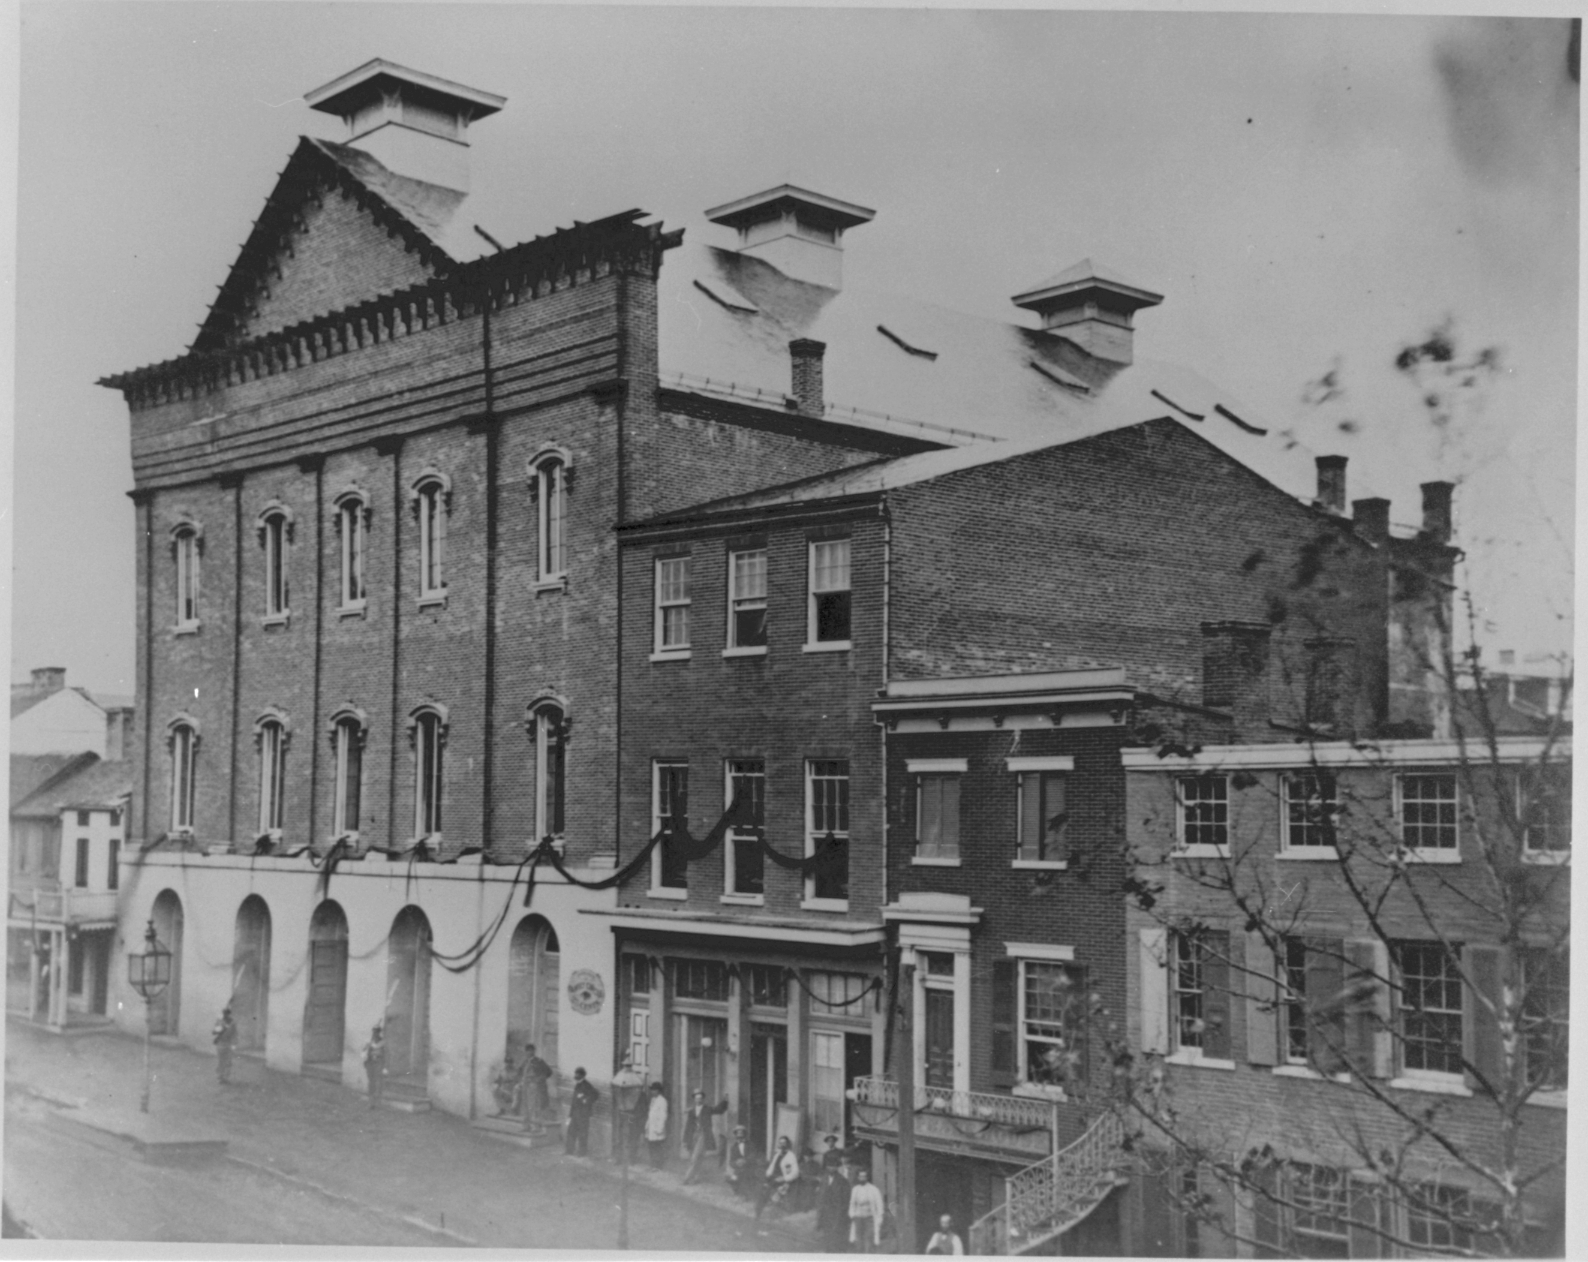 1865 black and white photograph of the exterior of Ford's Theatre in D.C. The image shows drapes of black fabric hanging horizontally between each window in mourning for the death of Abraham Lincoln.